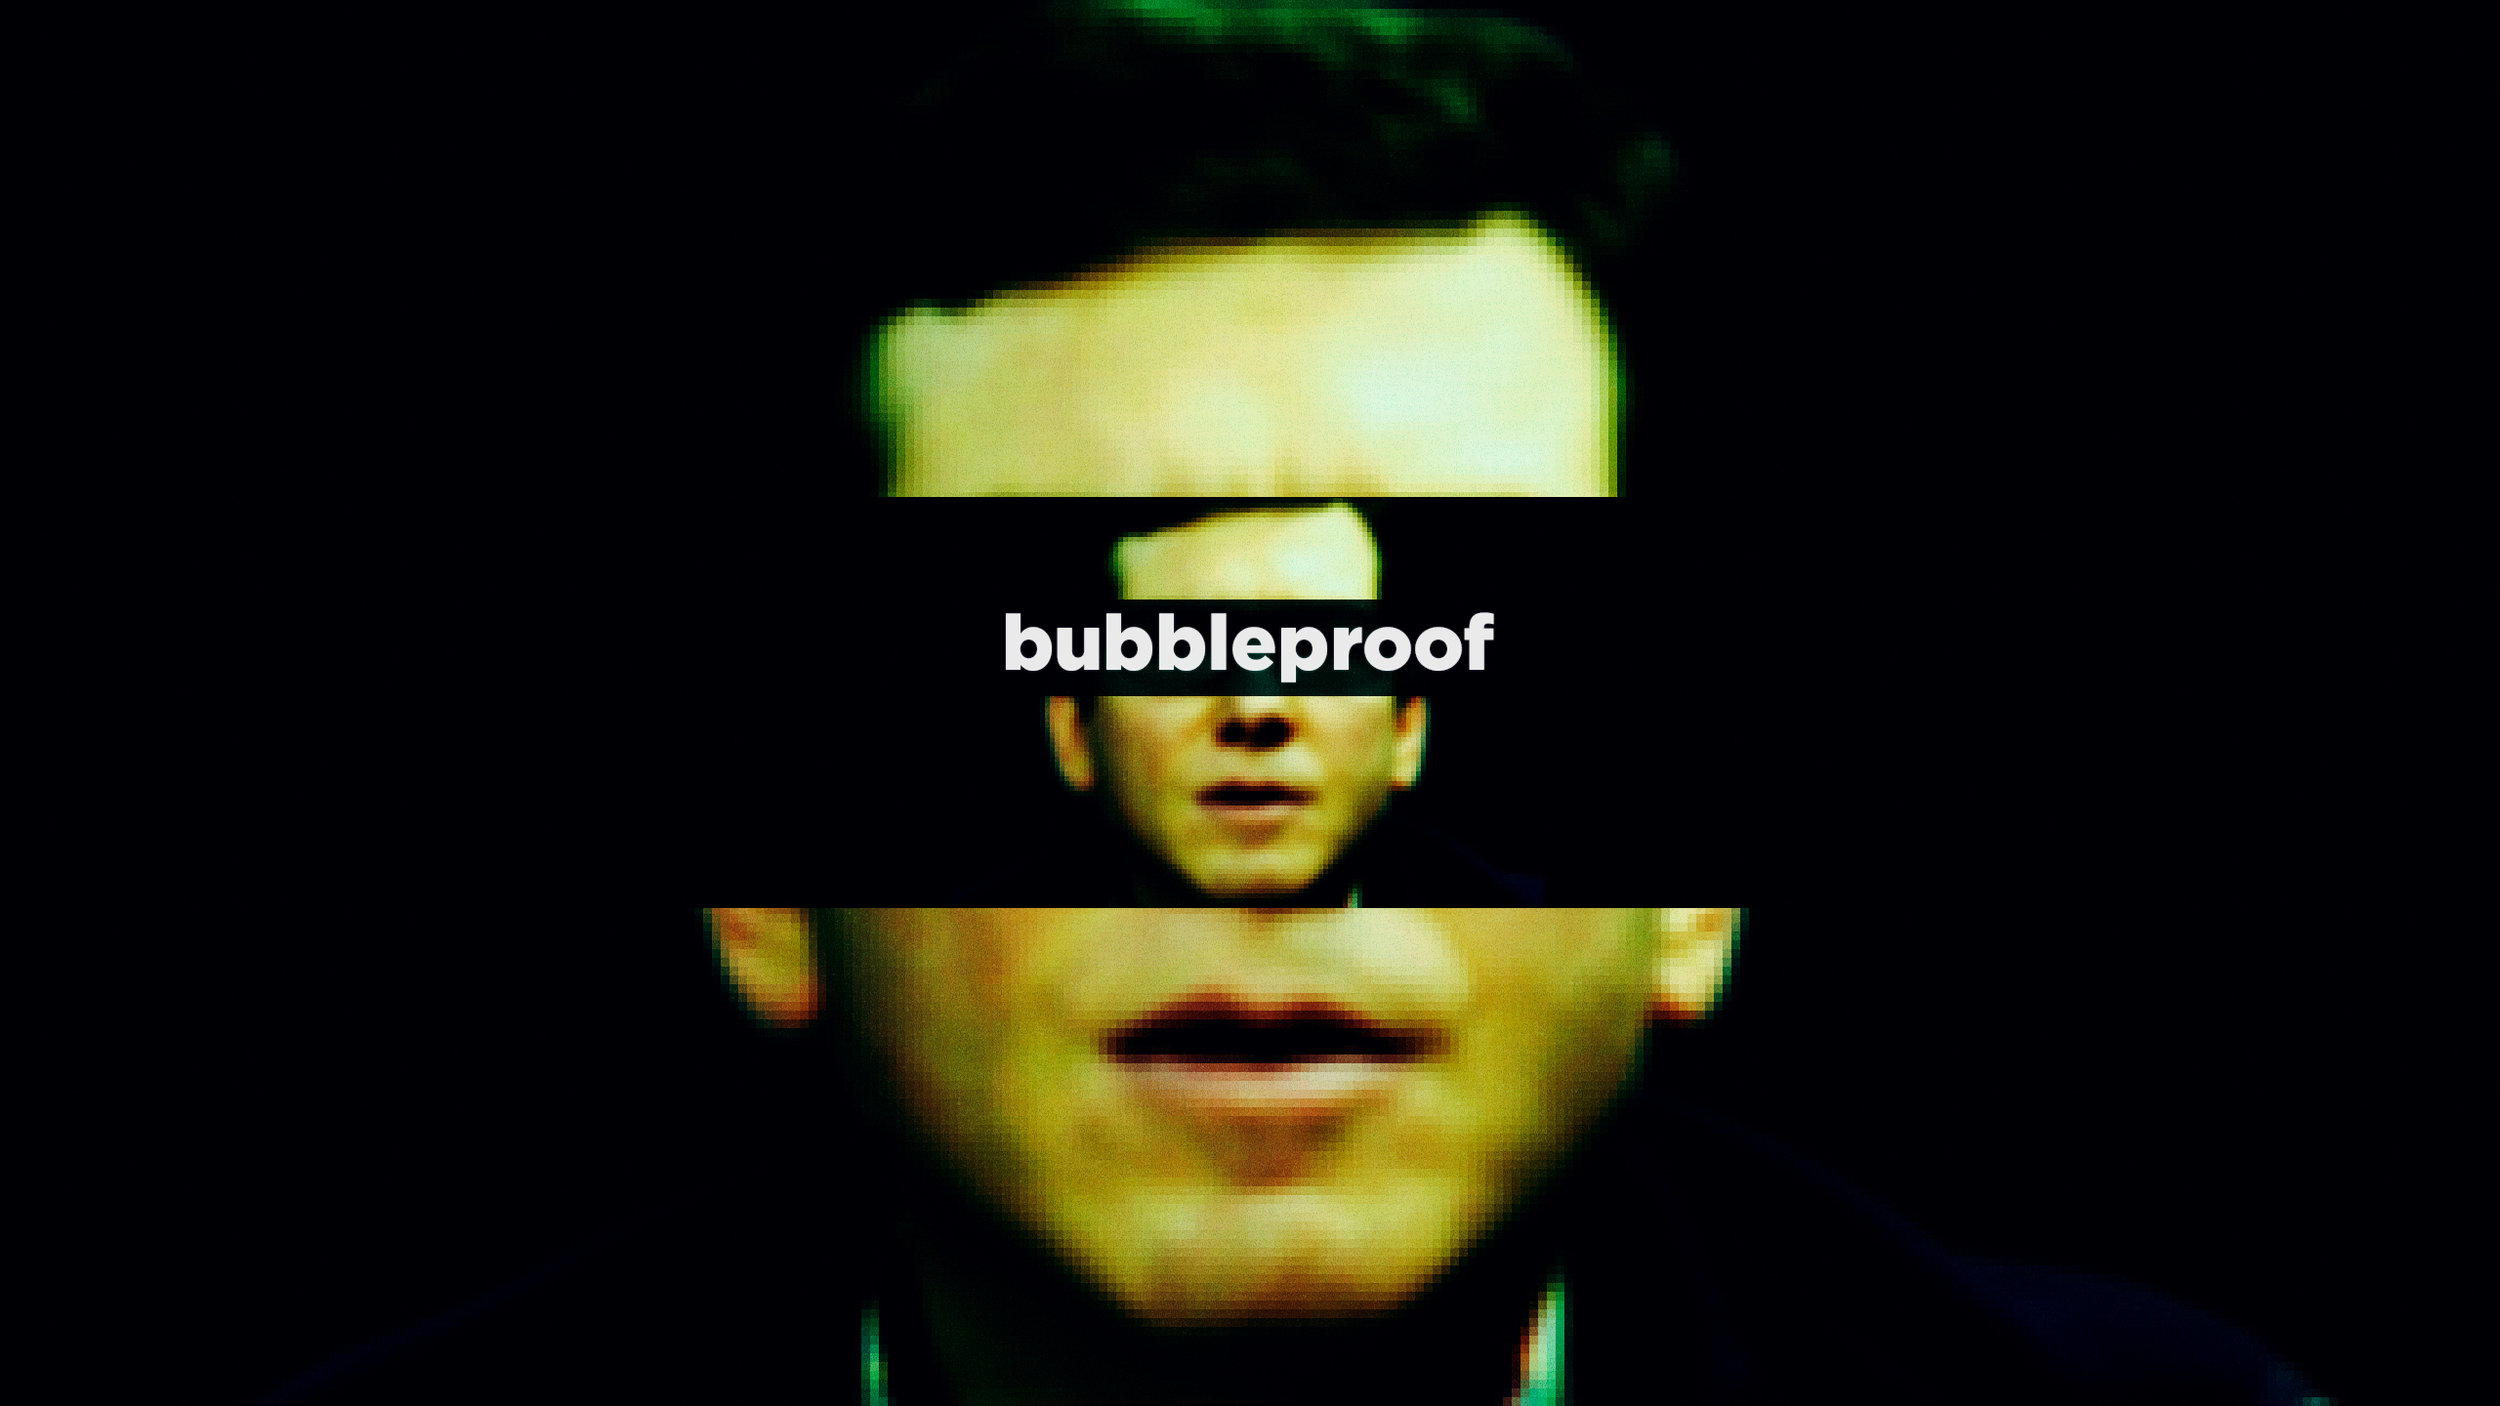 Bubbleproof - THE SERIES